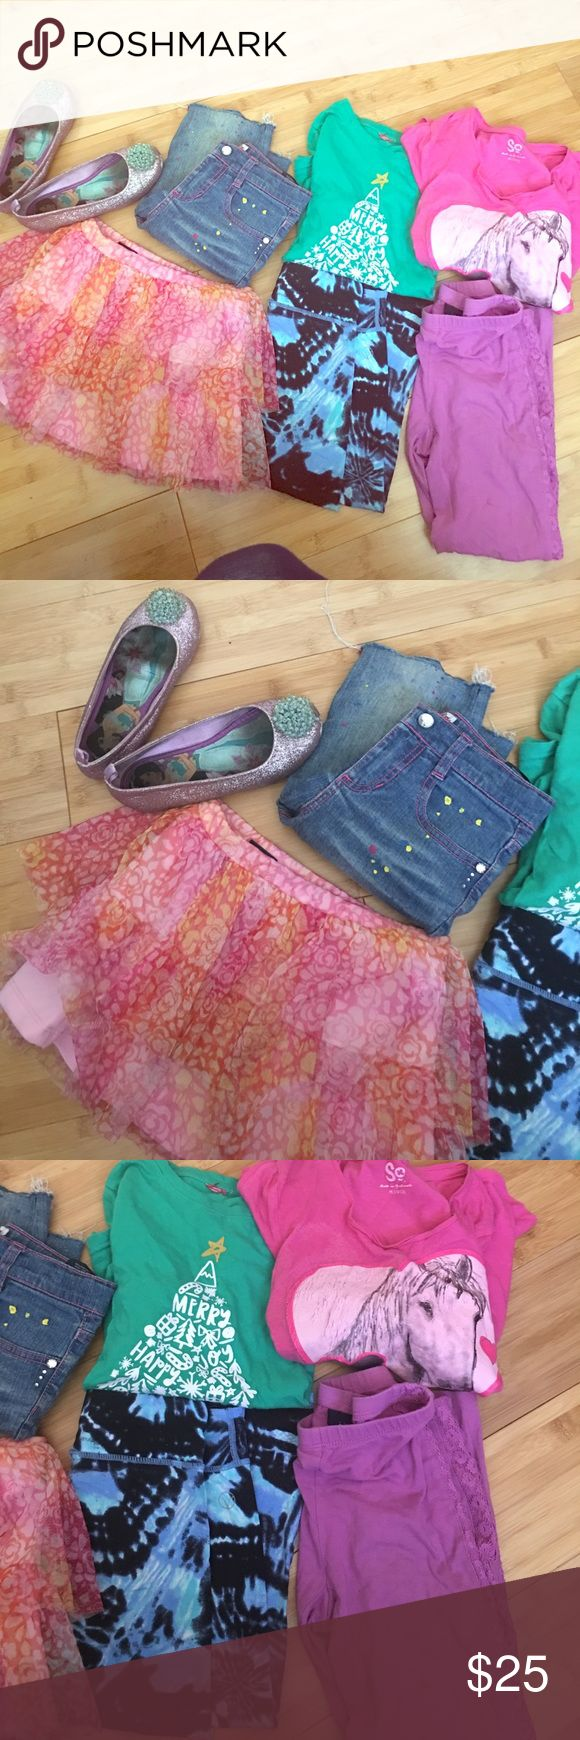 More than 20 pcs girls clothing More than 20 pcs of girls clothing including shoes. Size 7 to 10. Tops, shorts, pants, and dresses. All used but in good condition. I also have size 14 to 16 girls and boys clothing. Justice Shirts & Tops Tees - Short Sleeve